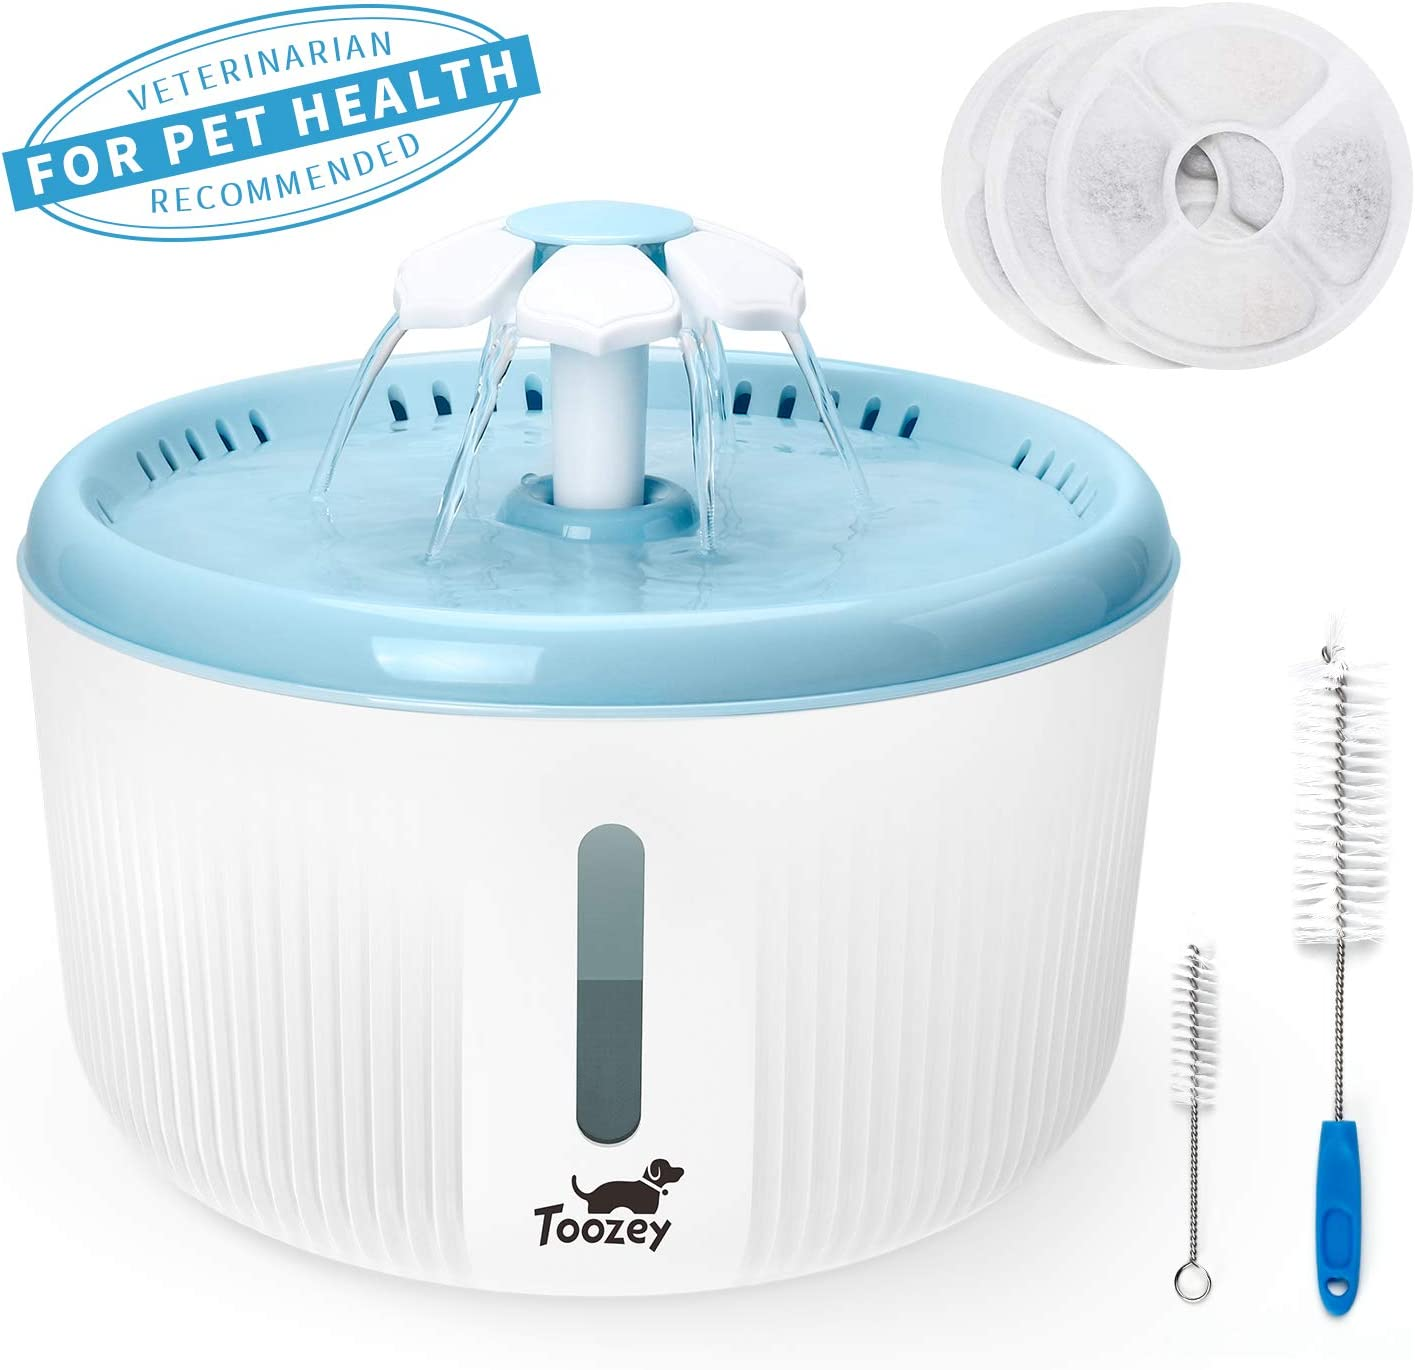 Toozey Cat Water Fountain, 2L Pet Fountain with Water Level Window and 3 Replacement Filters, Automatic Super Quiet Cat Water Dispenser, Dog Water Fountain, Pet Water Fountain for Cats and Dogs